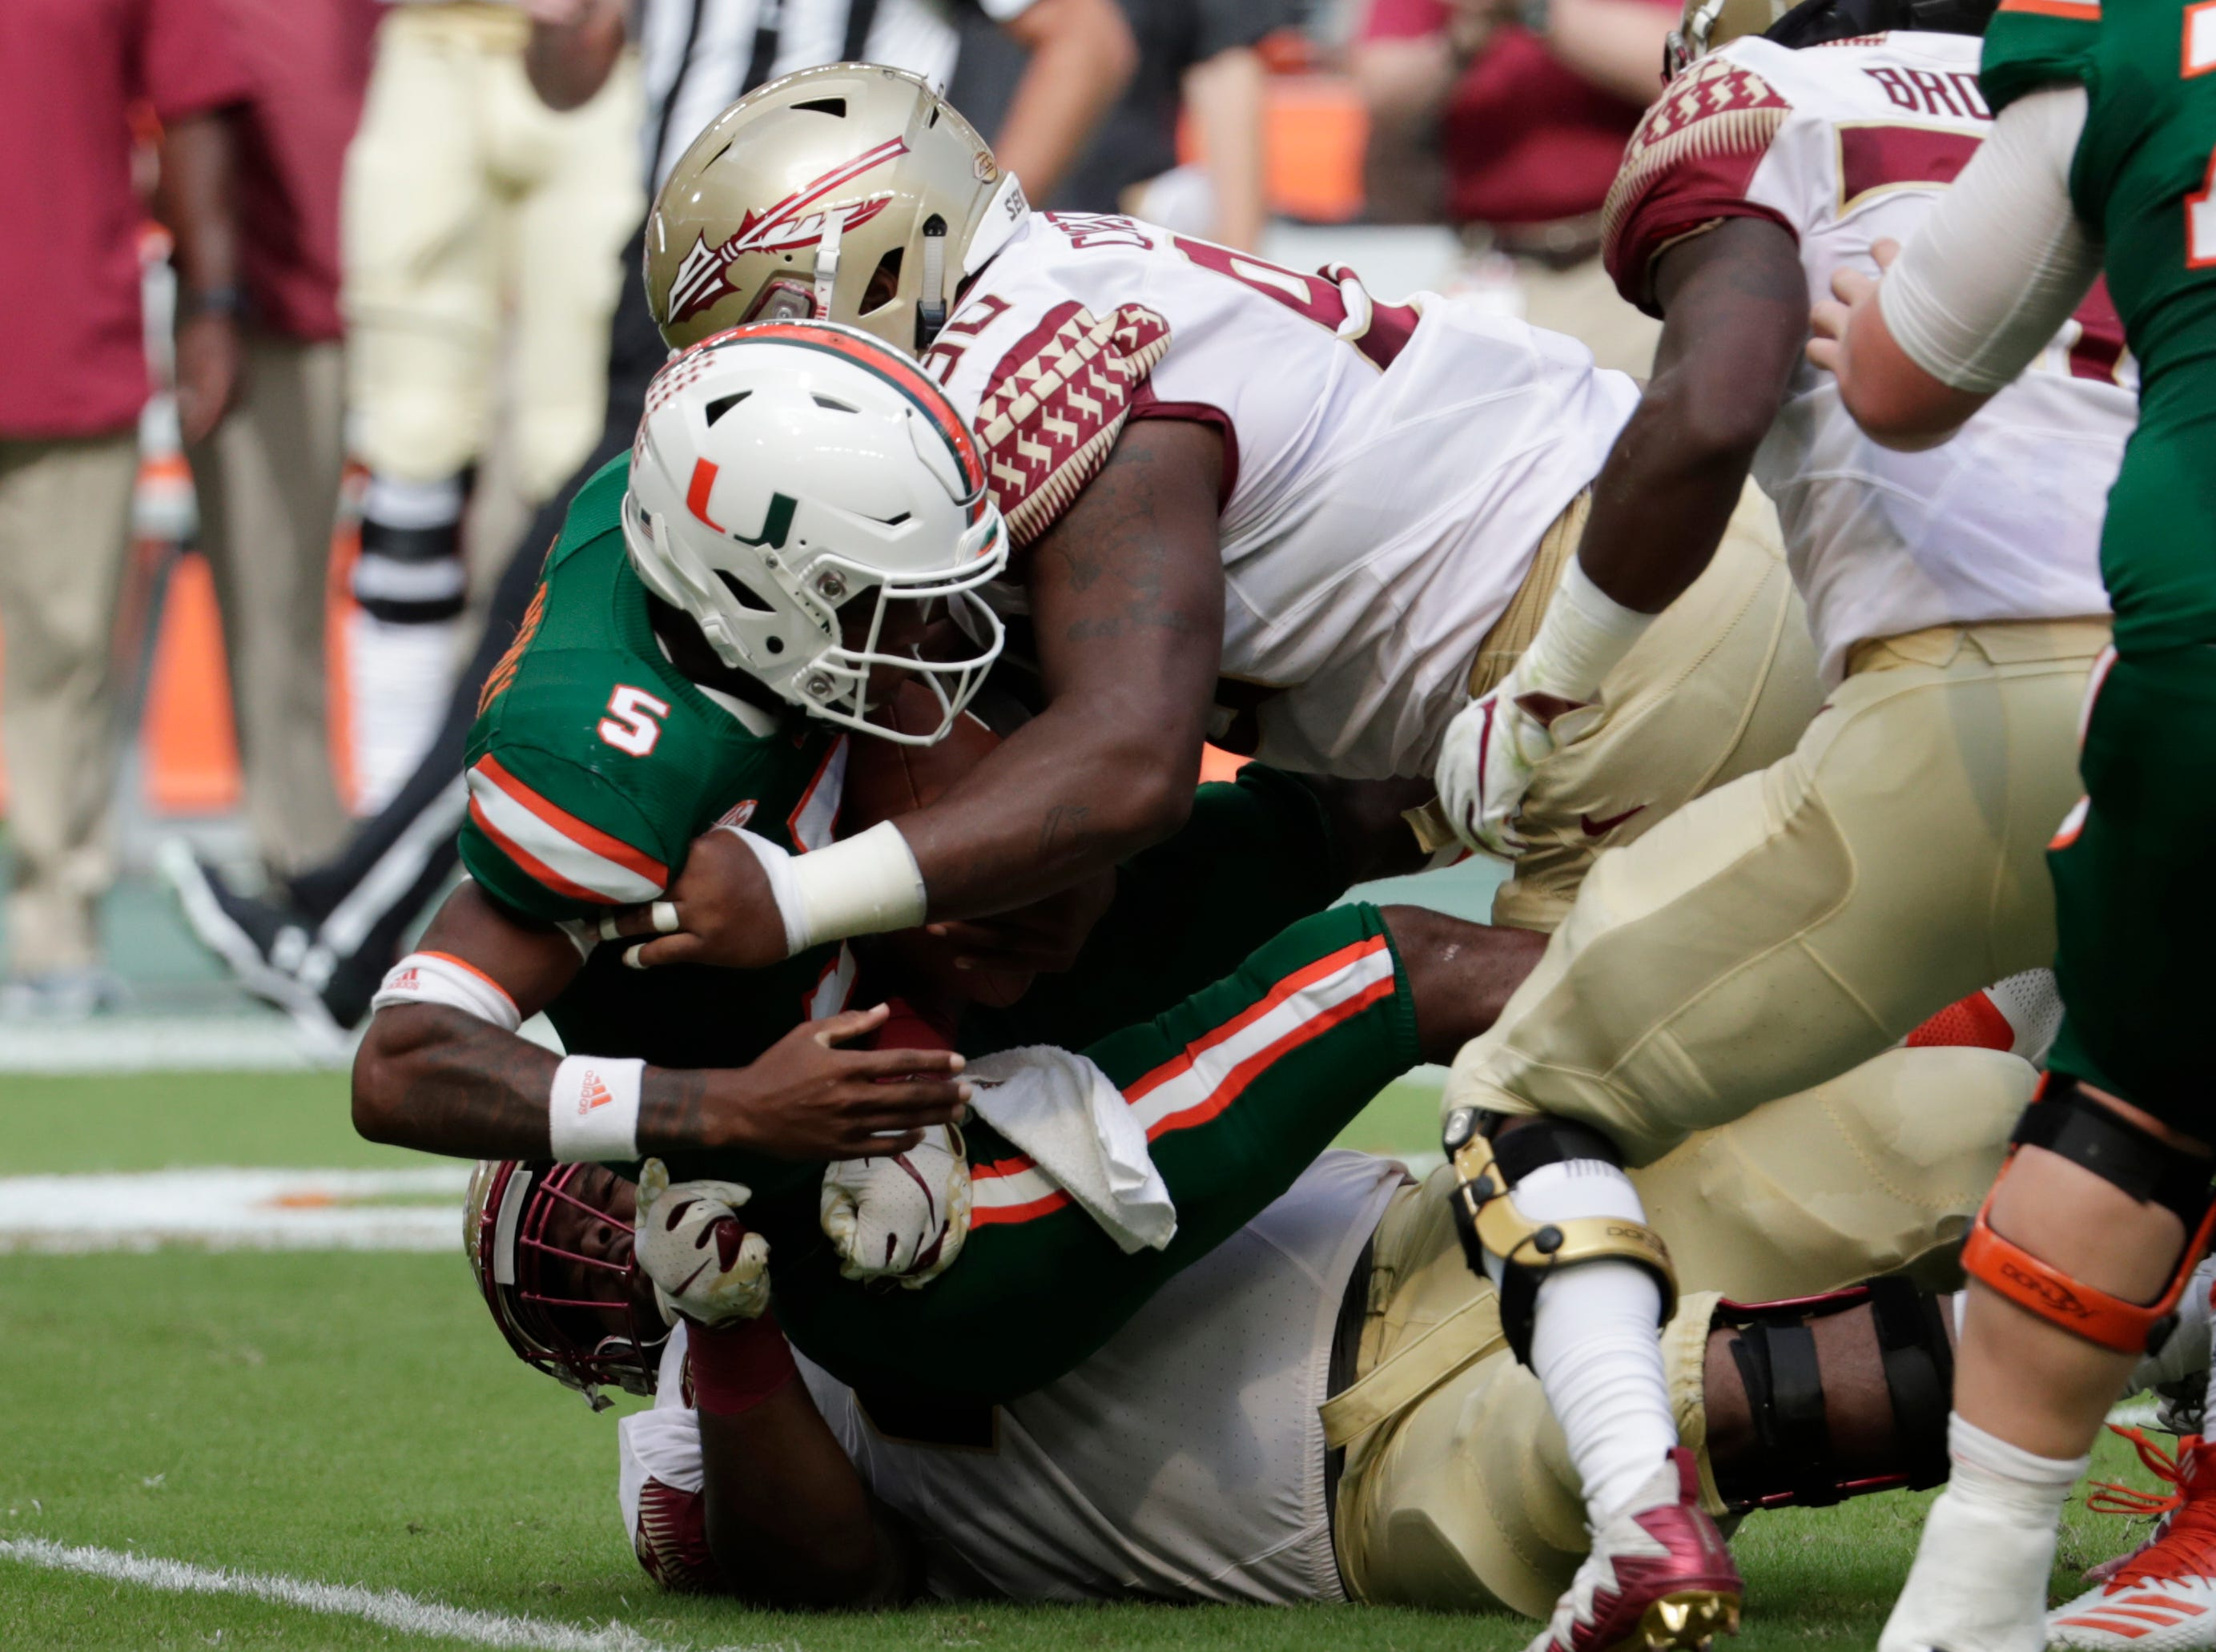 Miami quarterback N'Kosi Perry (5) is sacked by Florida State defensive tackle Demarcus Christmas (90) during the first half of an NCAA college football game, Saturday, Oct. 6, 2018, in Miami Gardens, Fla. (AP Photo/Lynne Sladky)